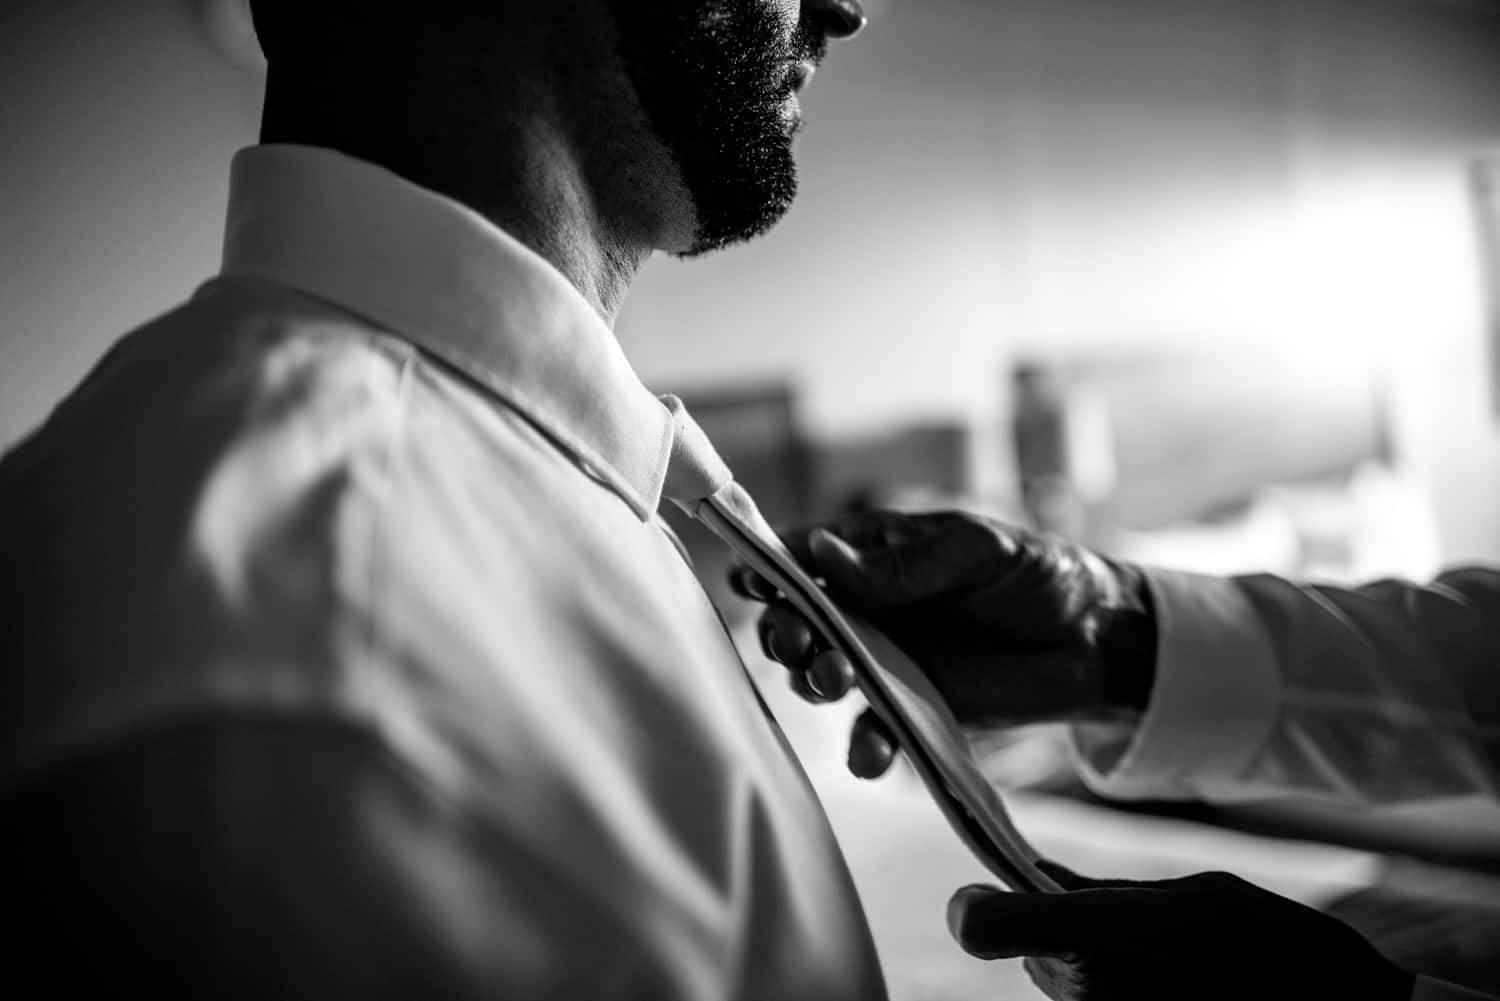 A groomsman's hands carefully tie the grooms tie before the wedding ceremony.